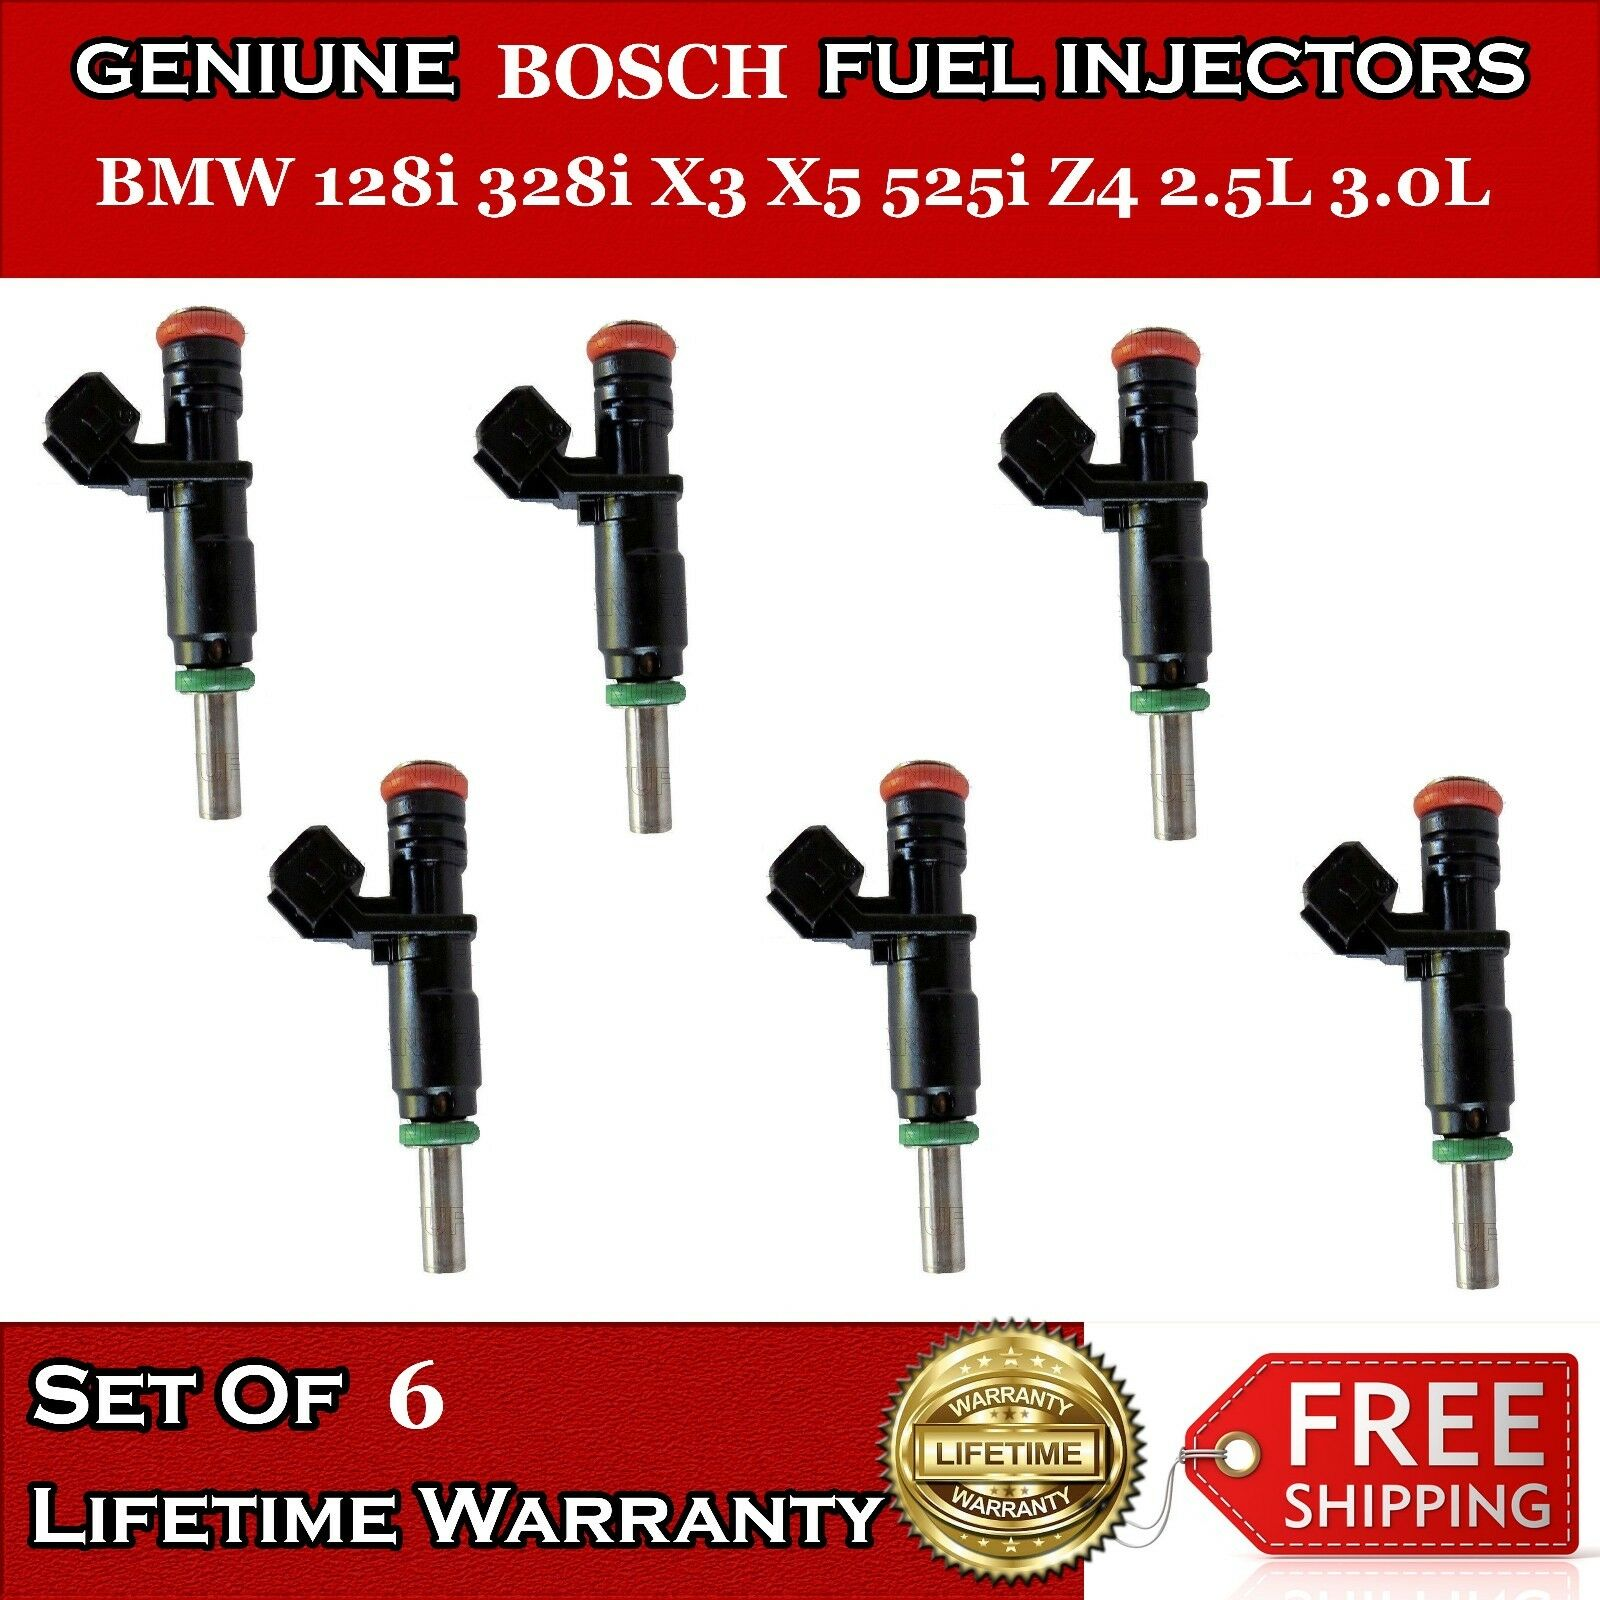 Used BMW Fuel Injectors for Sale - Page 21